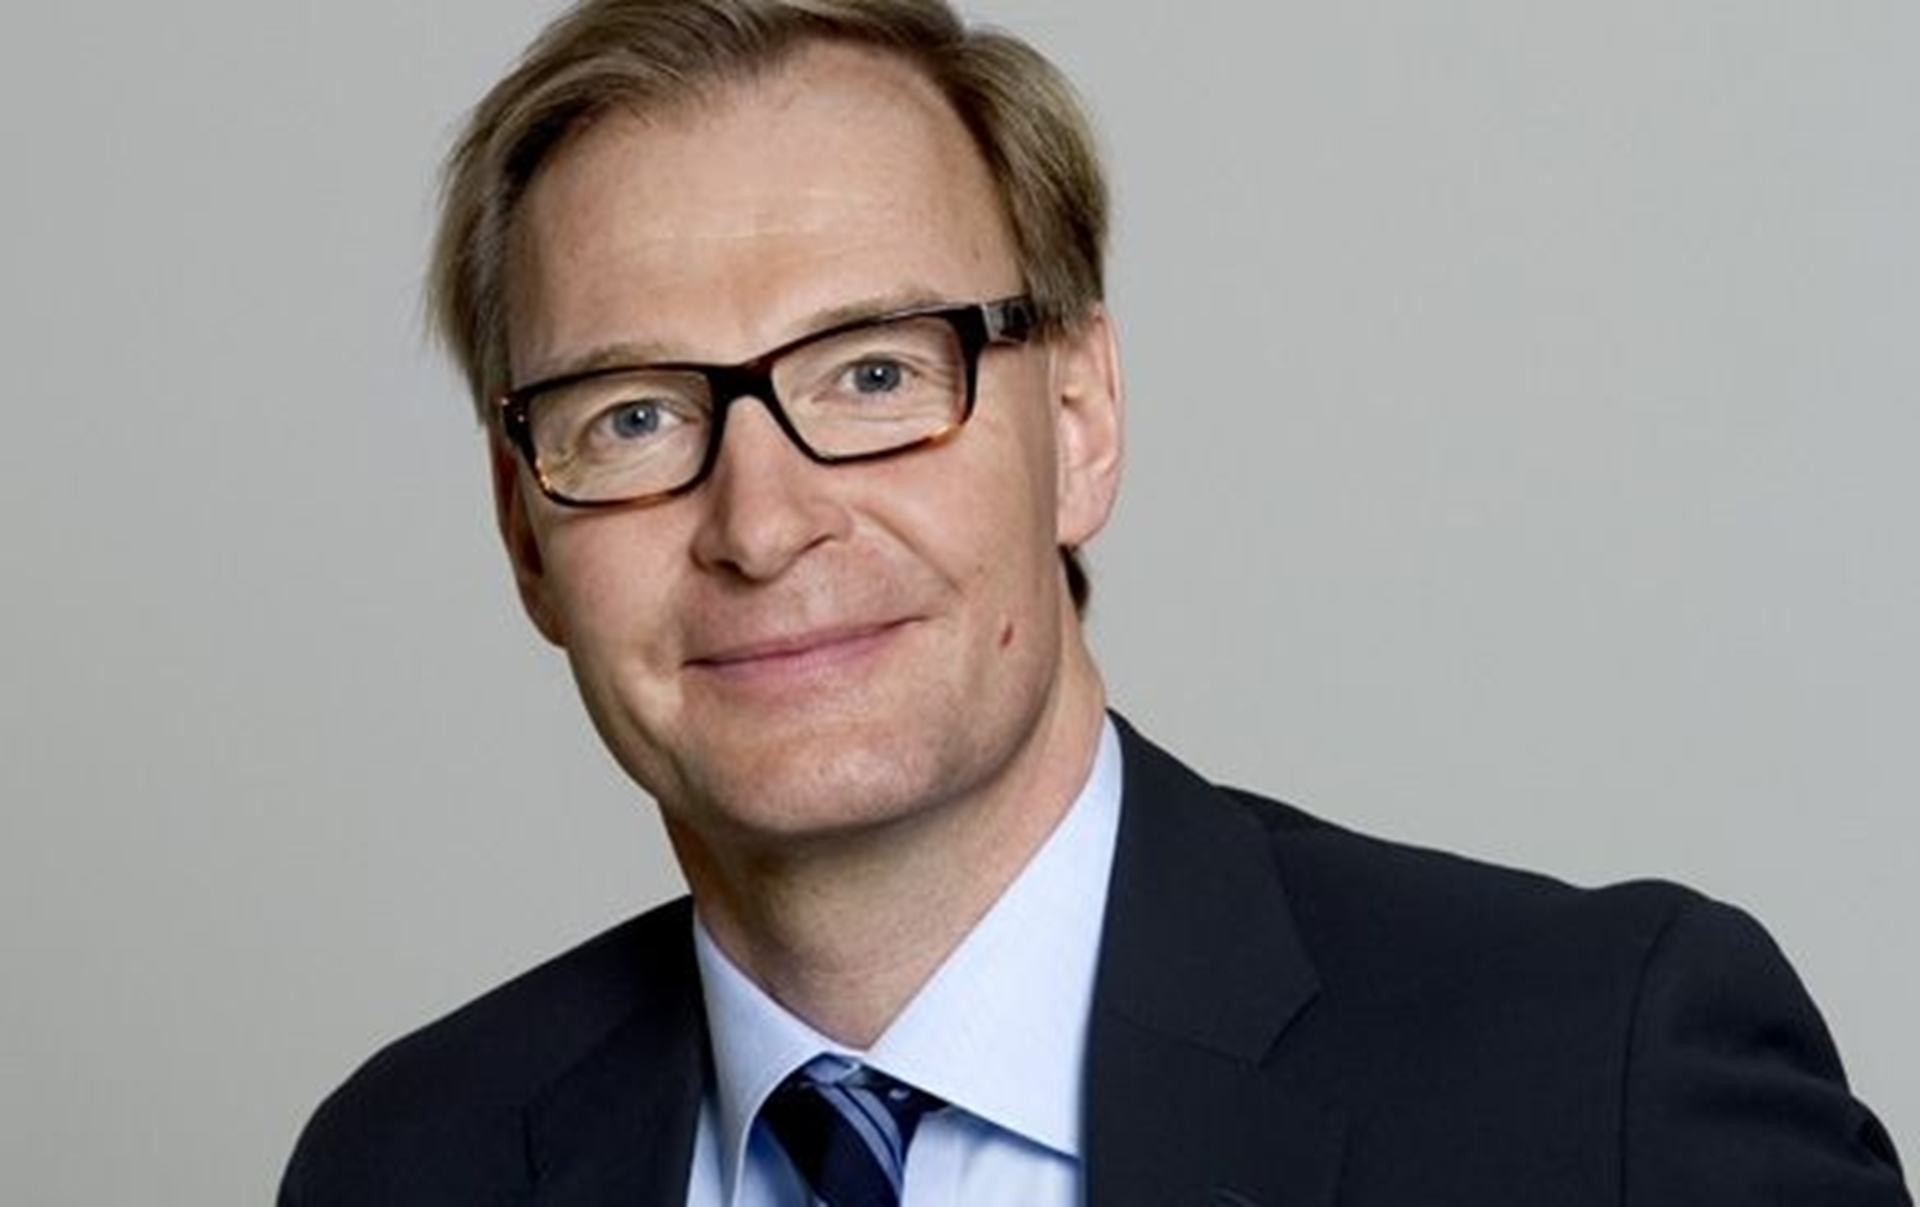 Volvo President and CEO Olof Persson